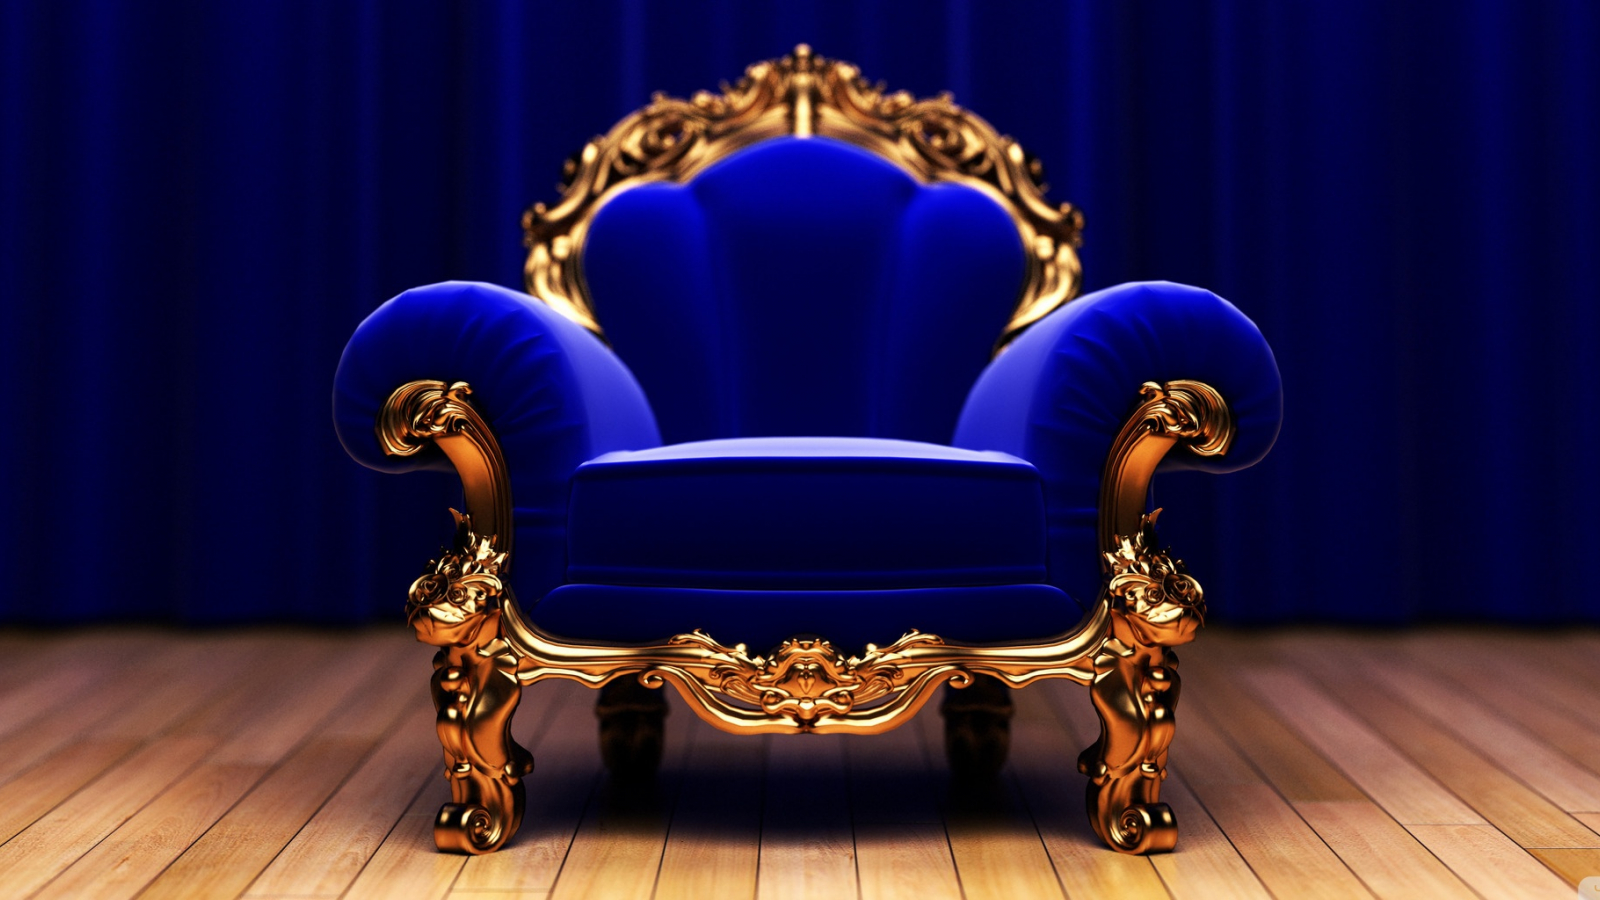 Free Download King Armchair 4k Hd Desktop Wallpaper For 4k Ultra Hd Tv 2560x1024 For Your Desktop Mobile Tablet Explore 96 King And Queen Wallpapers King And Queen Wallpapers